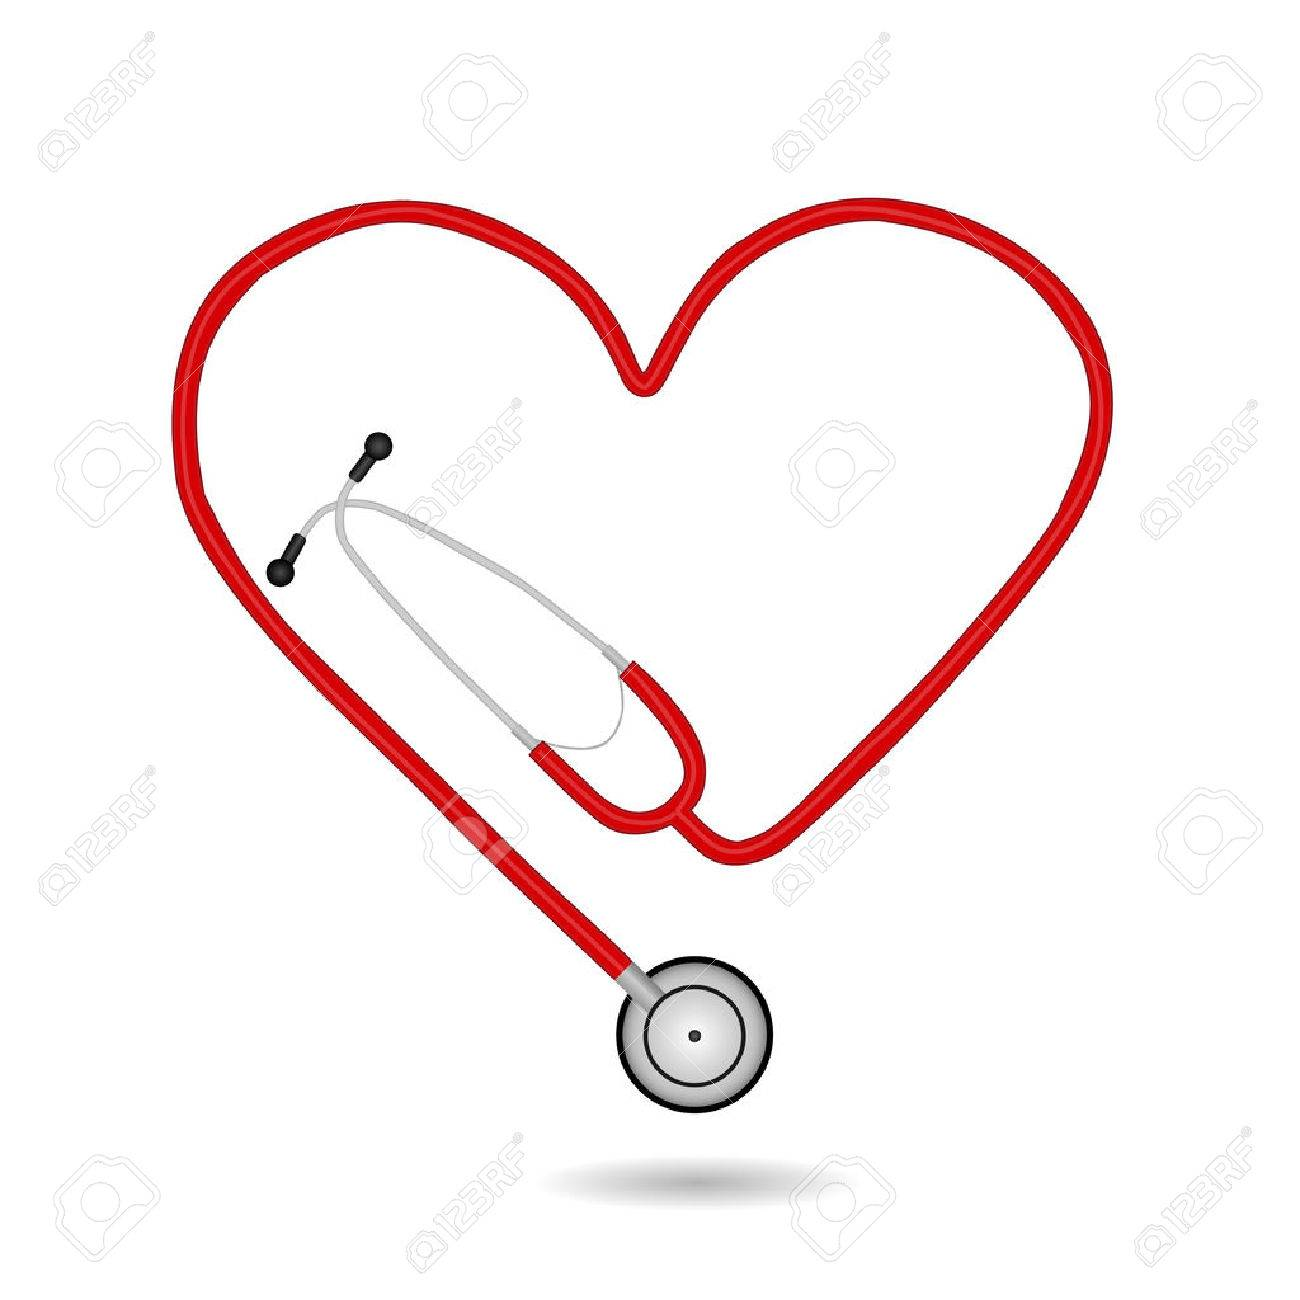 Image of a medical stethoscope isolated on a white background. - 26168743